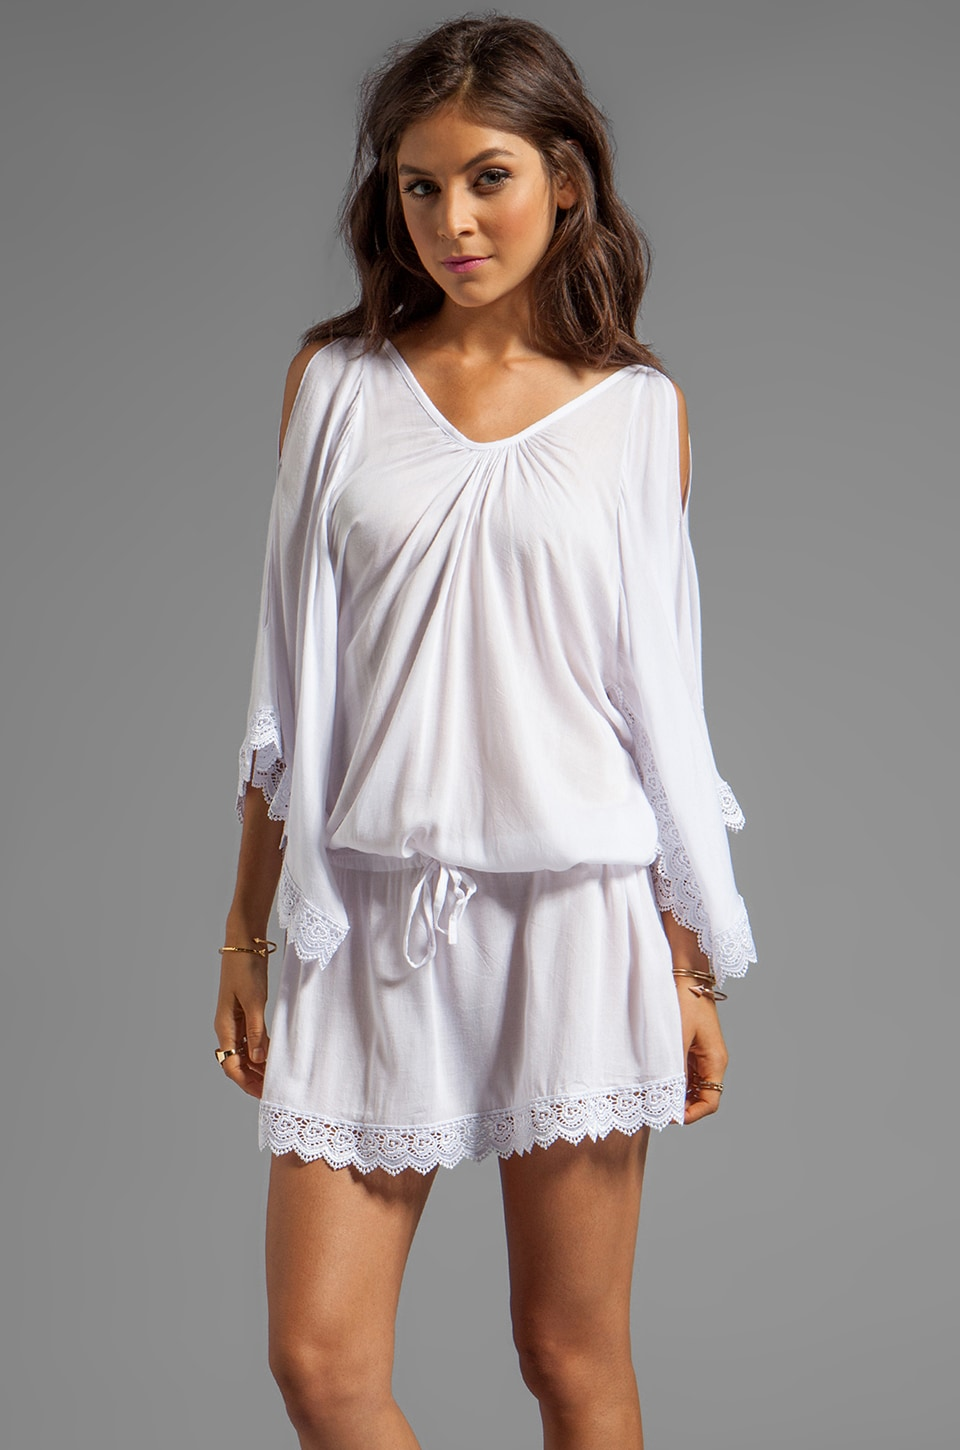 Tiare Hawaii Hoku Dress in White